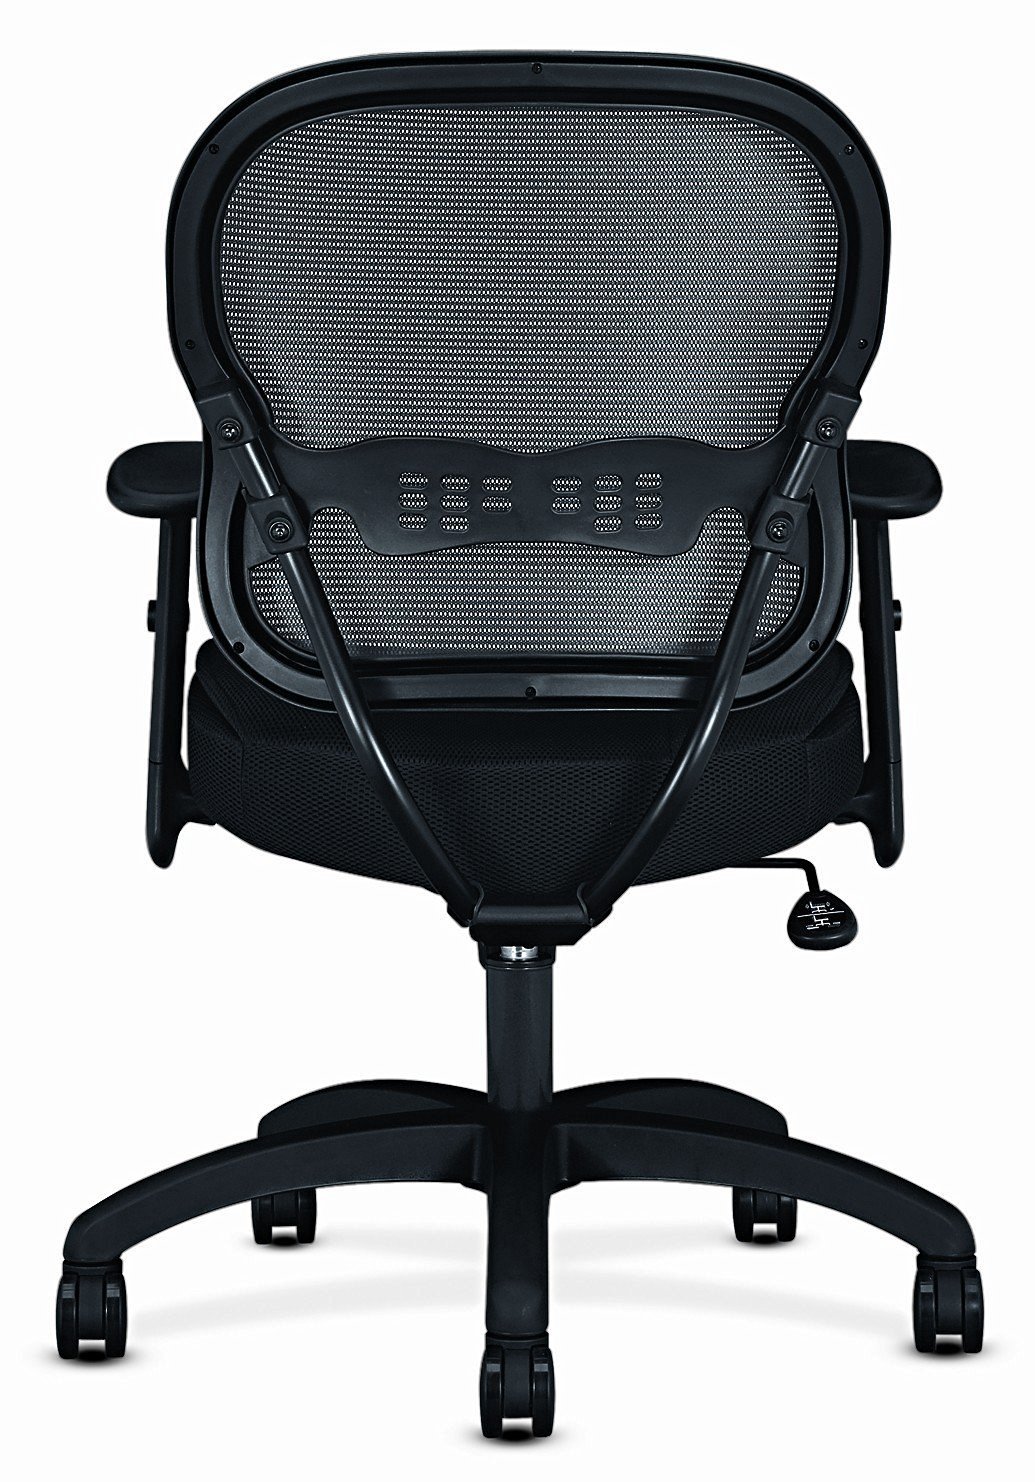 Mid-Back Mesh Office Chair, Black Mesh - Quality Office Chairs with Arms, with Comfortable Back Support - Ideal Executive Office Chair, Managerial Chair, Computer Chair or Home Office Chair